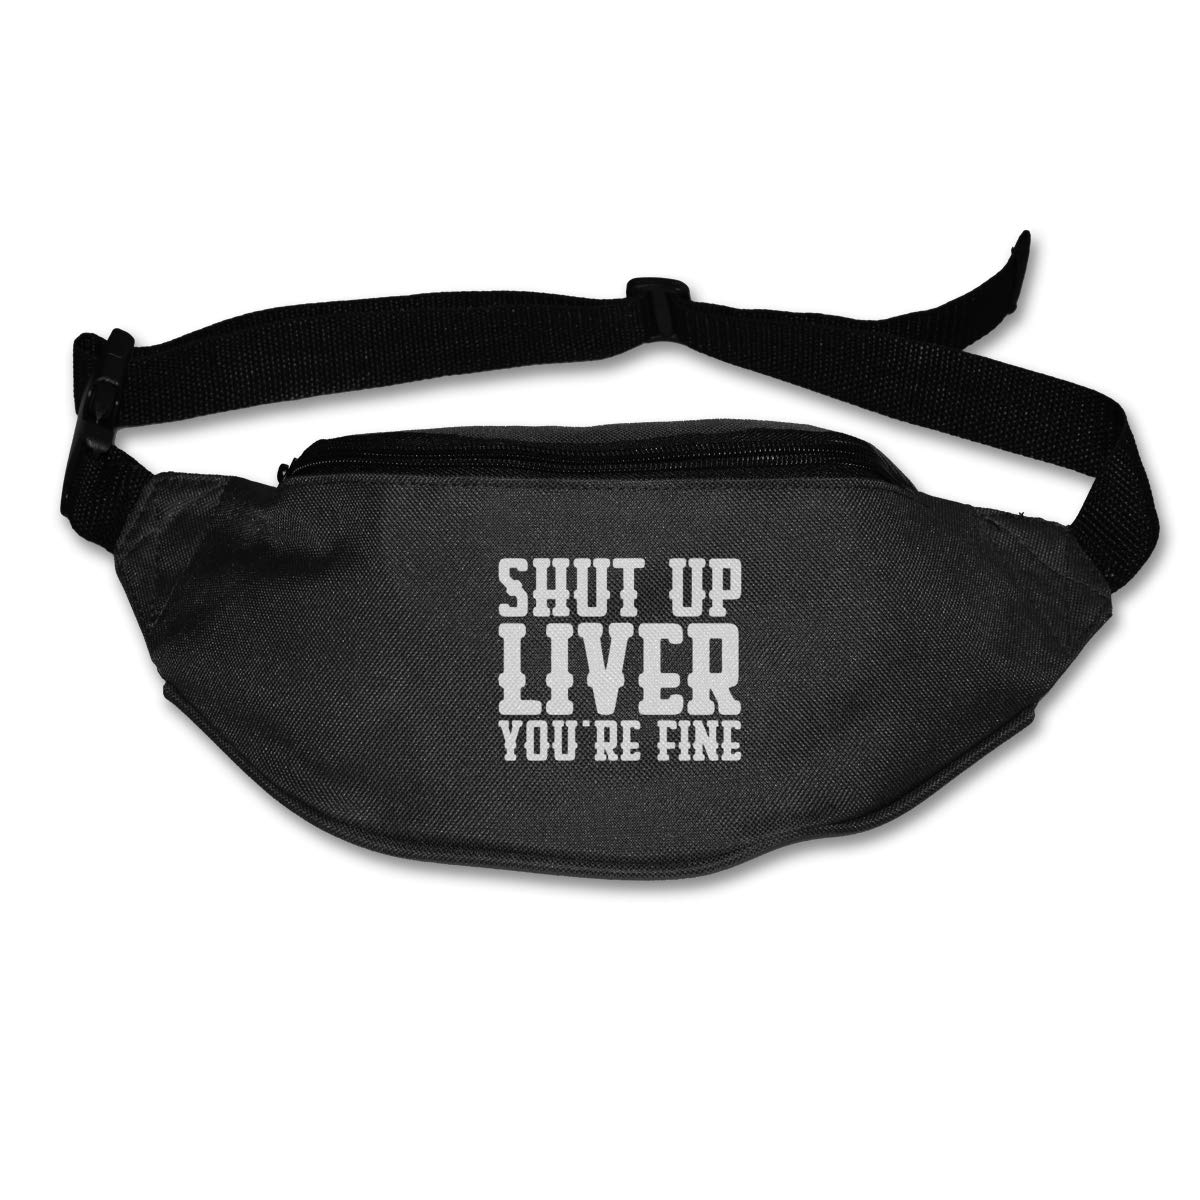 Shut Up Liver Youre Fine Sport Waist Pack Fanny Pack Adjustable For Hike